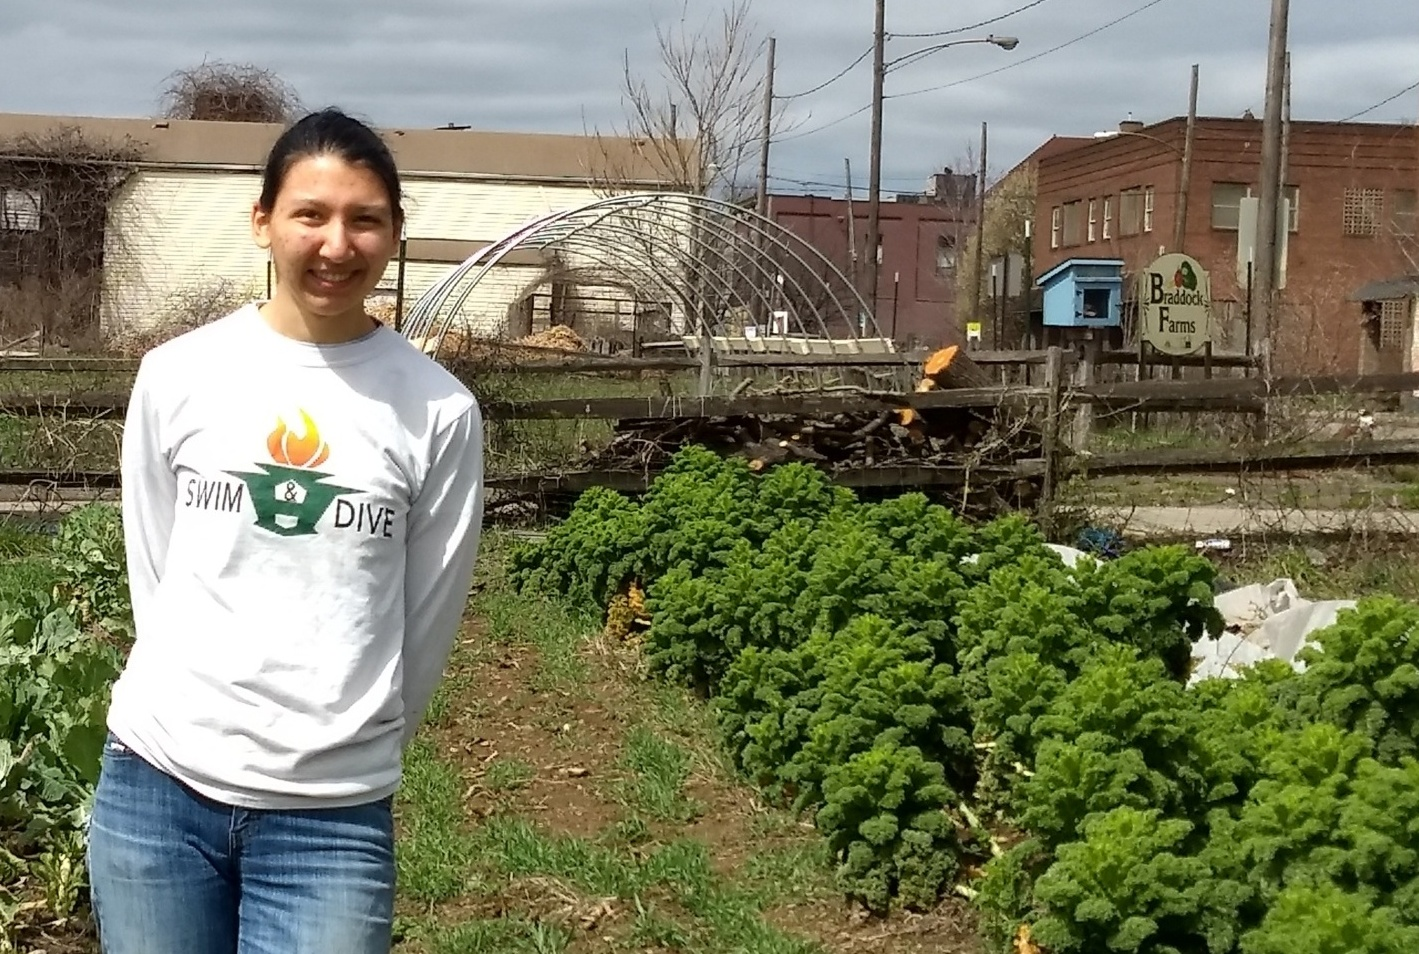 Meet the Grower: Nisha Gudal, Braddock Farms Apprentice